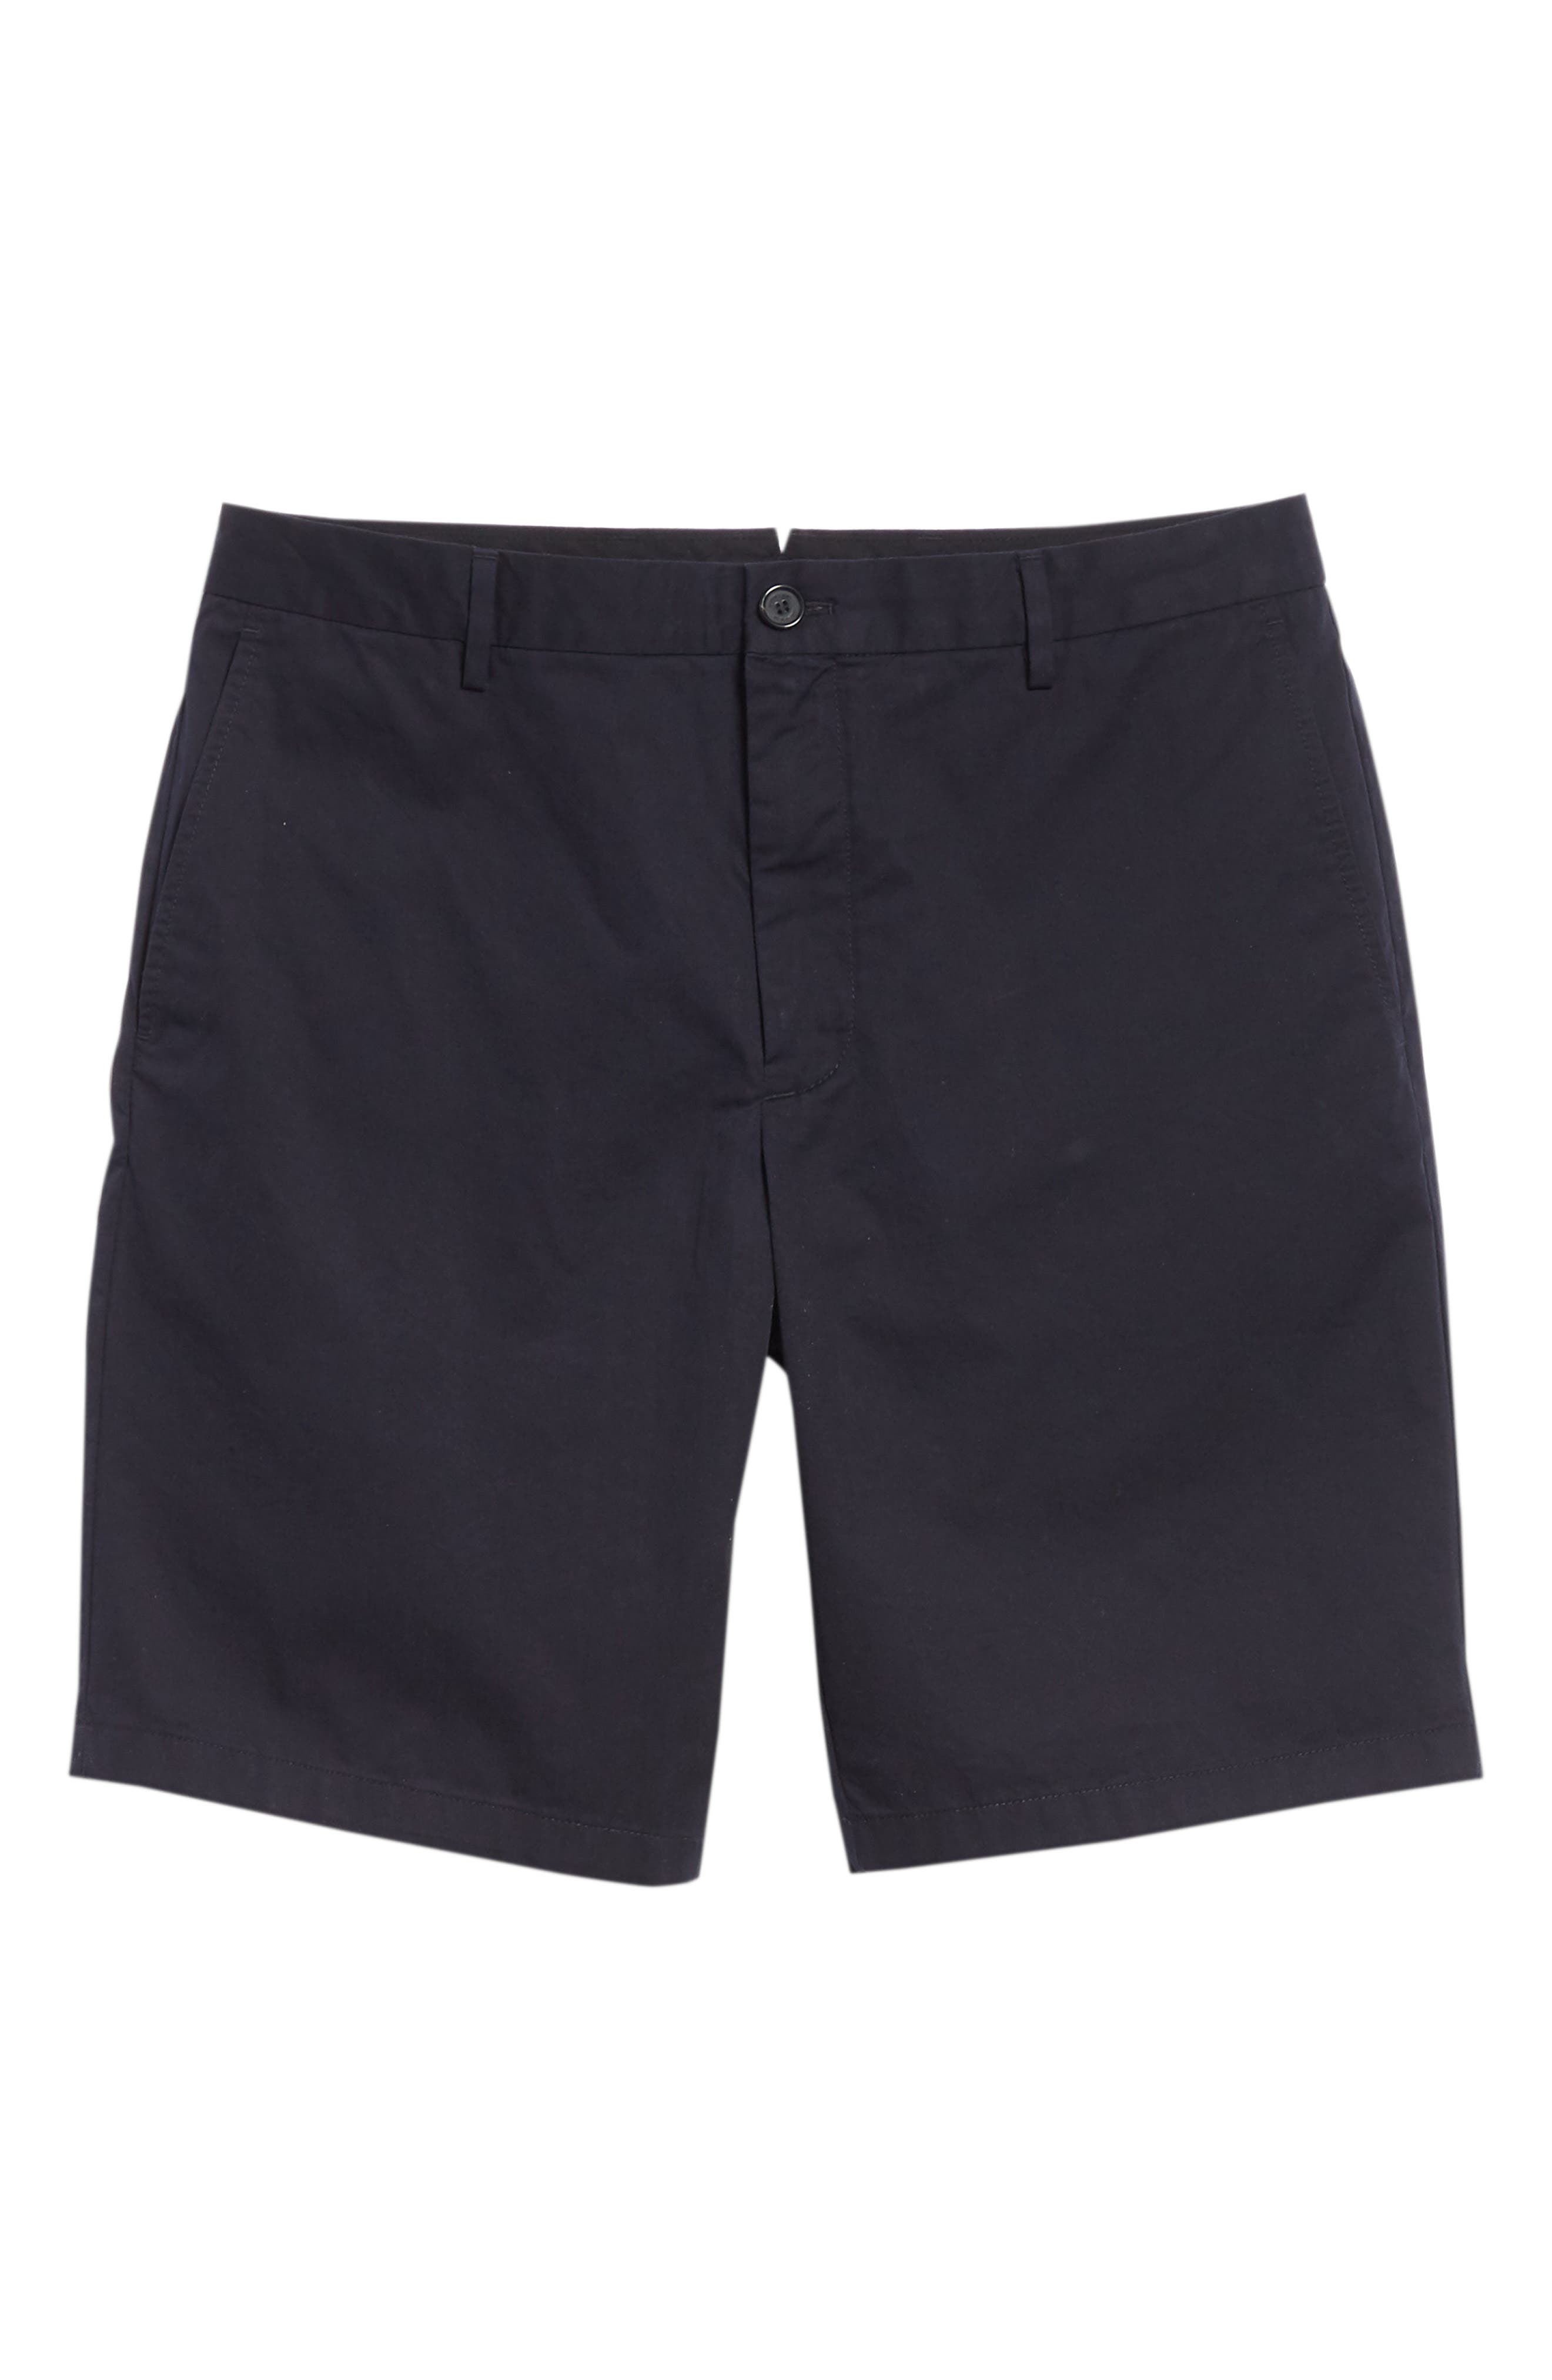 Stanhope Chino Shorts,                             Alternate thumbnail 6, color,                             INK